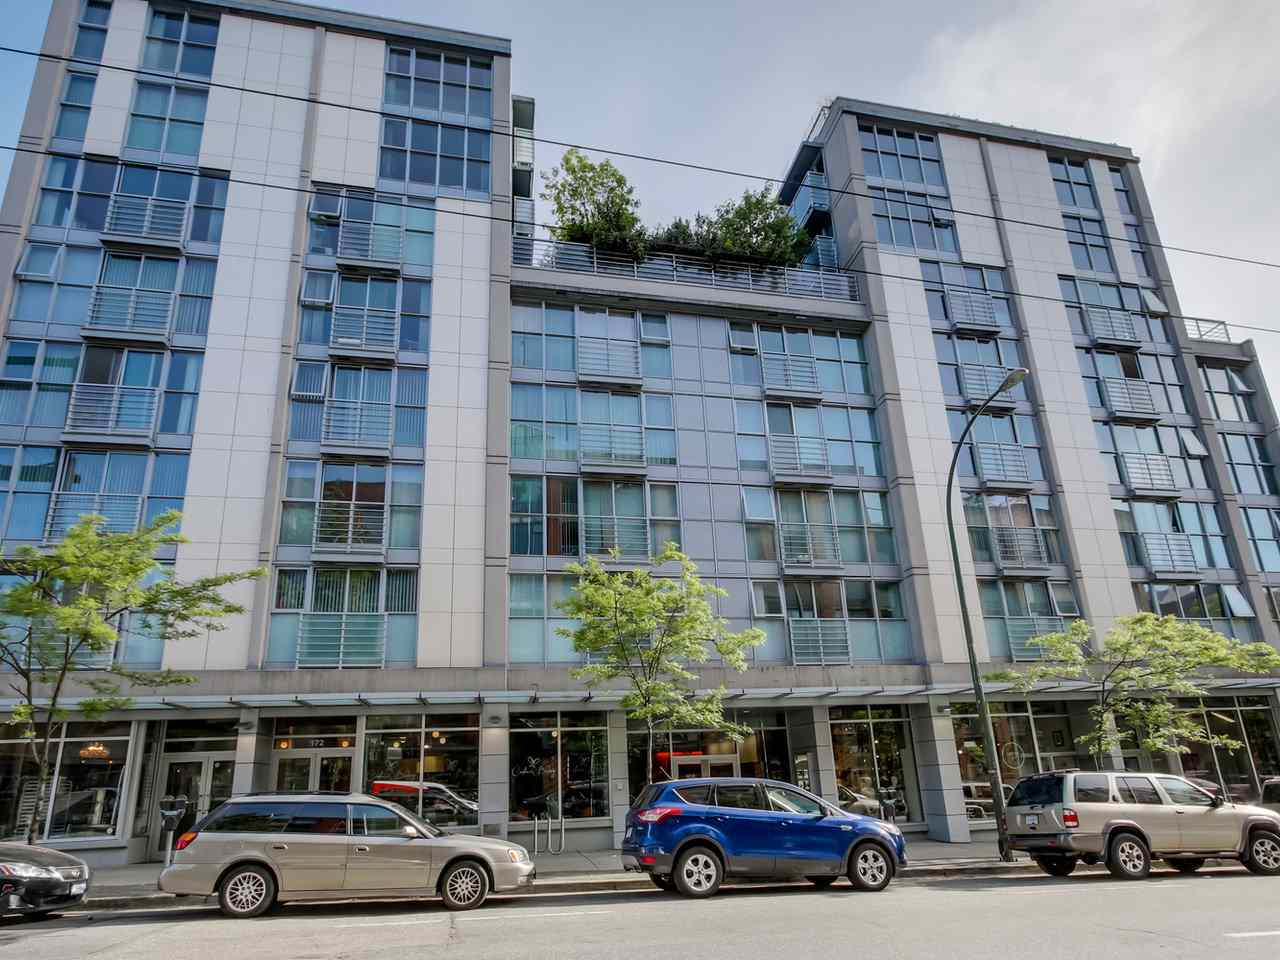 "Main Photo: 312 168 POWELL Street in Vancouver: Downtown VE Condo for sale in ""SMART BY CONCORD PACIFIC"" (Vancouver East)  : MLS® # R2066626"